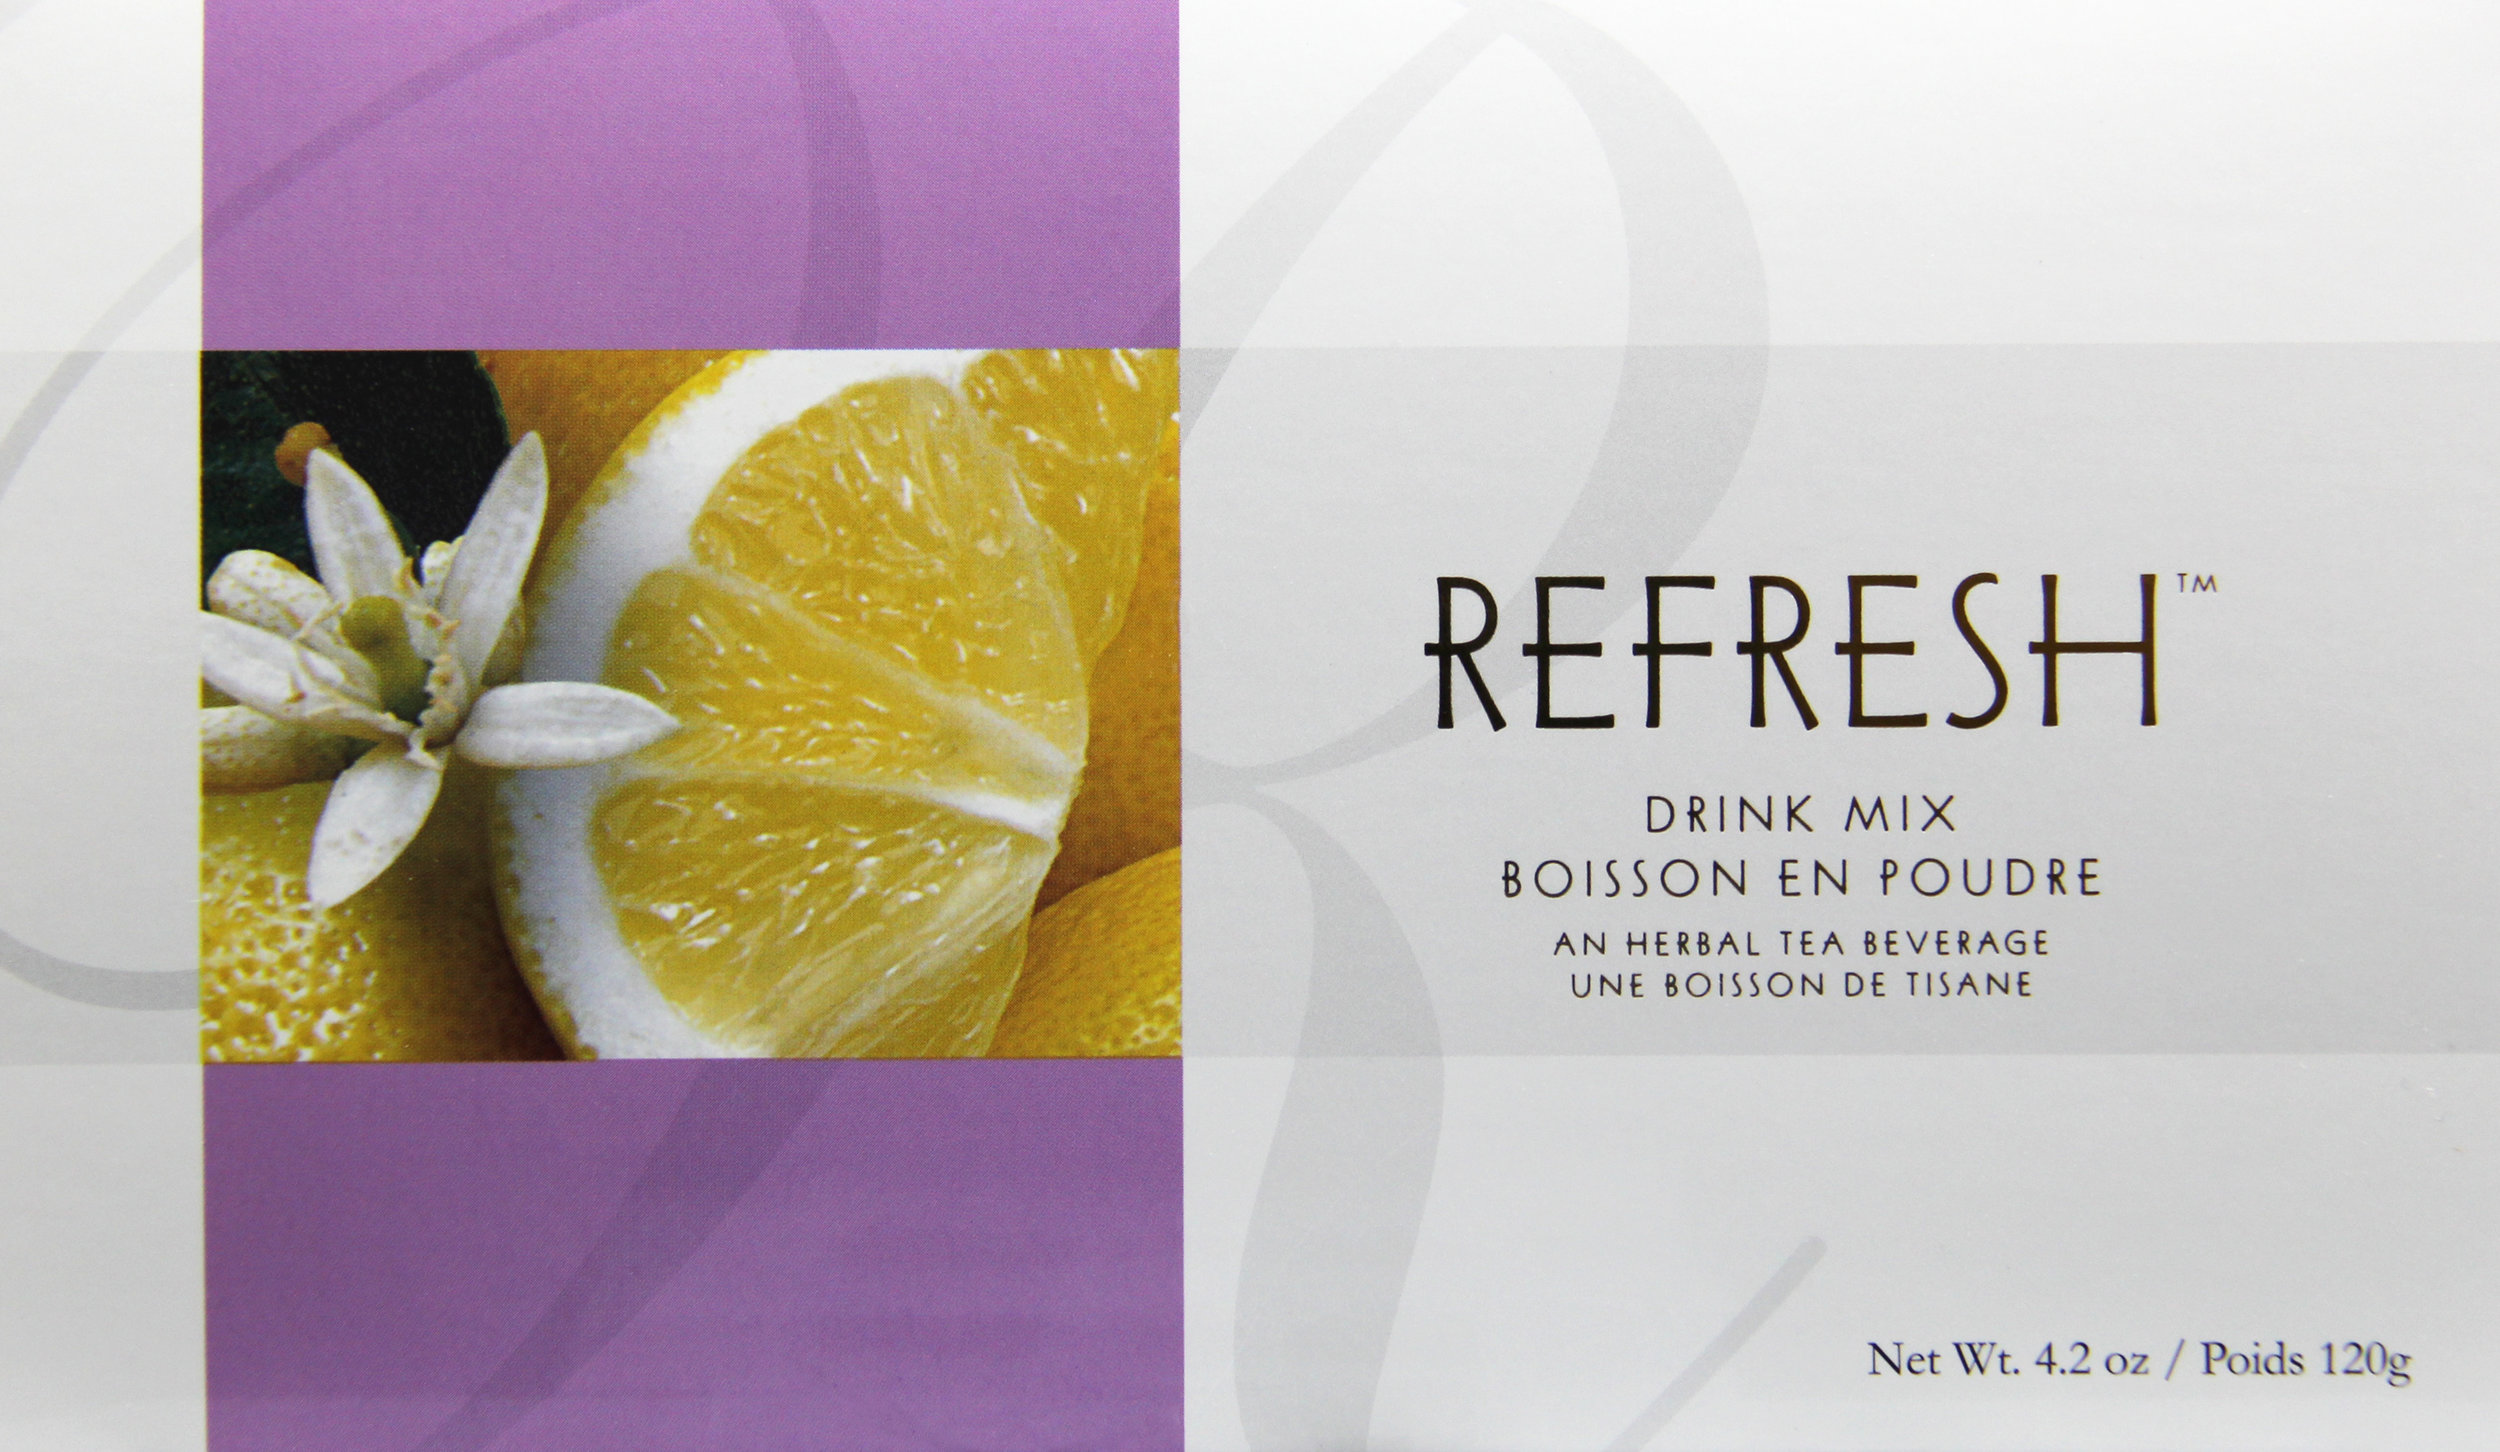 refresh - LOW-CALORIE, NO SUGAR URINARY AND KIDNEY SUPPORT*Featured Ingredients: Roasted Barley Seed, Shiitake, Reishi, Noni Fruit